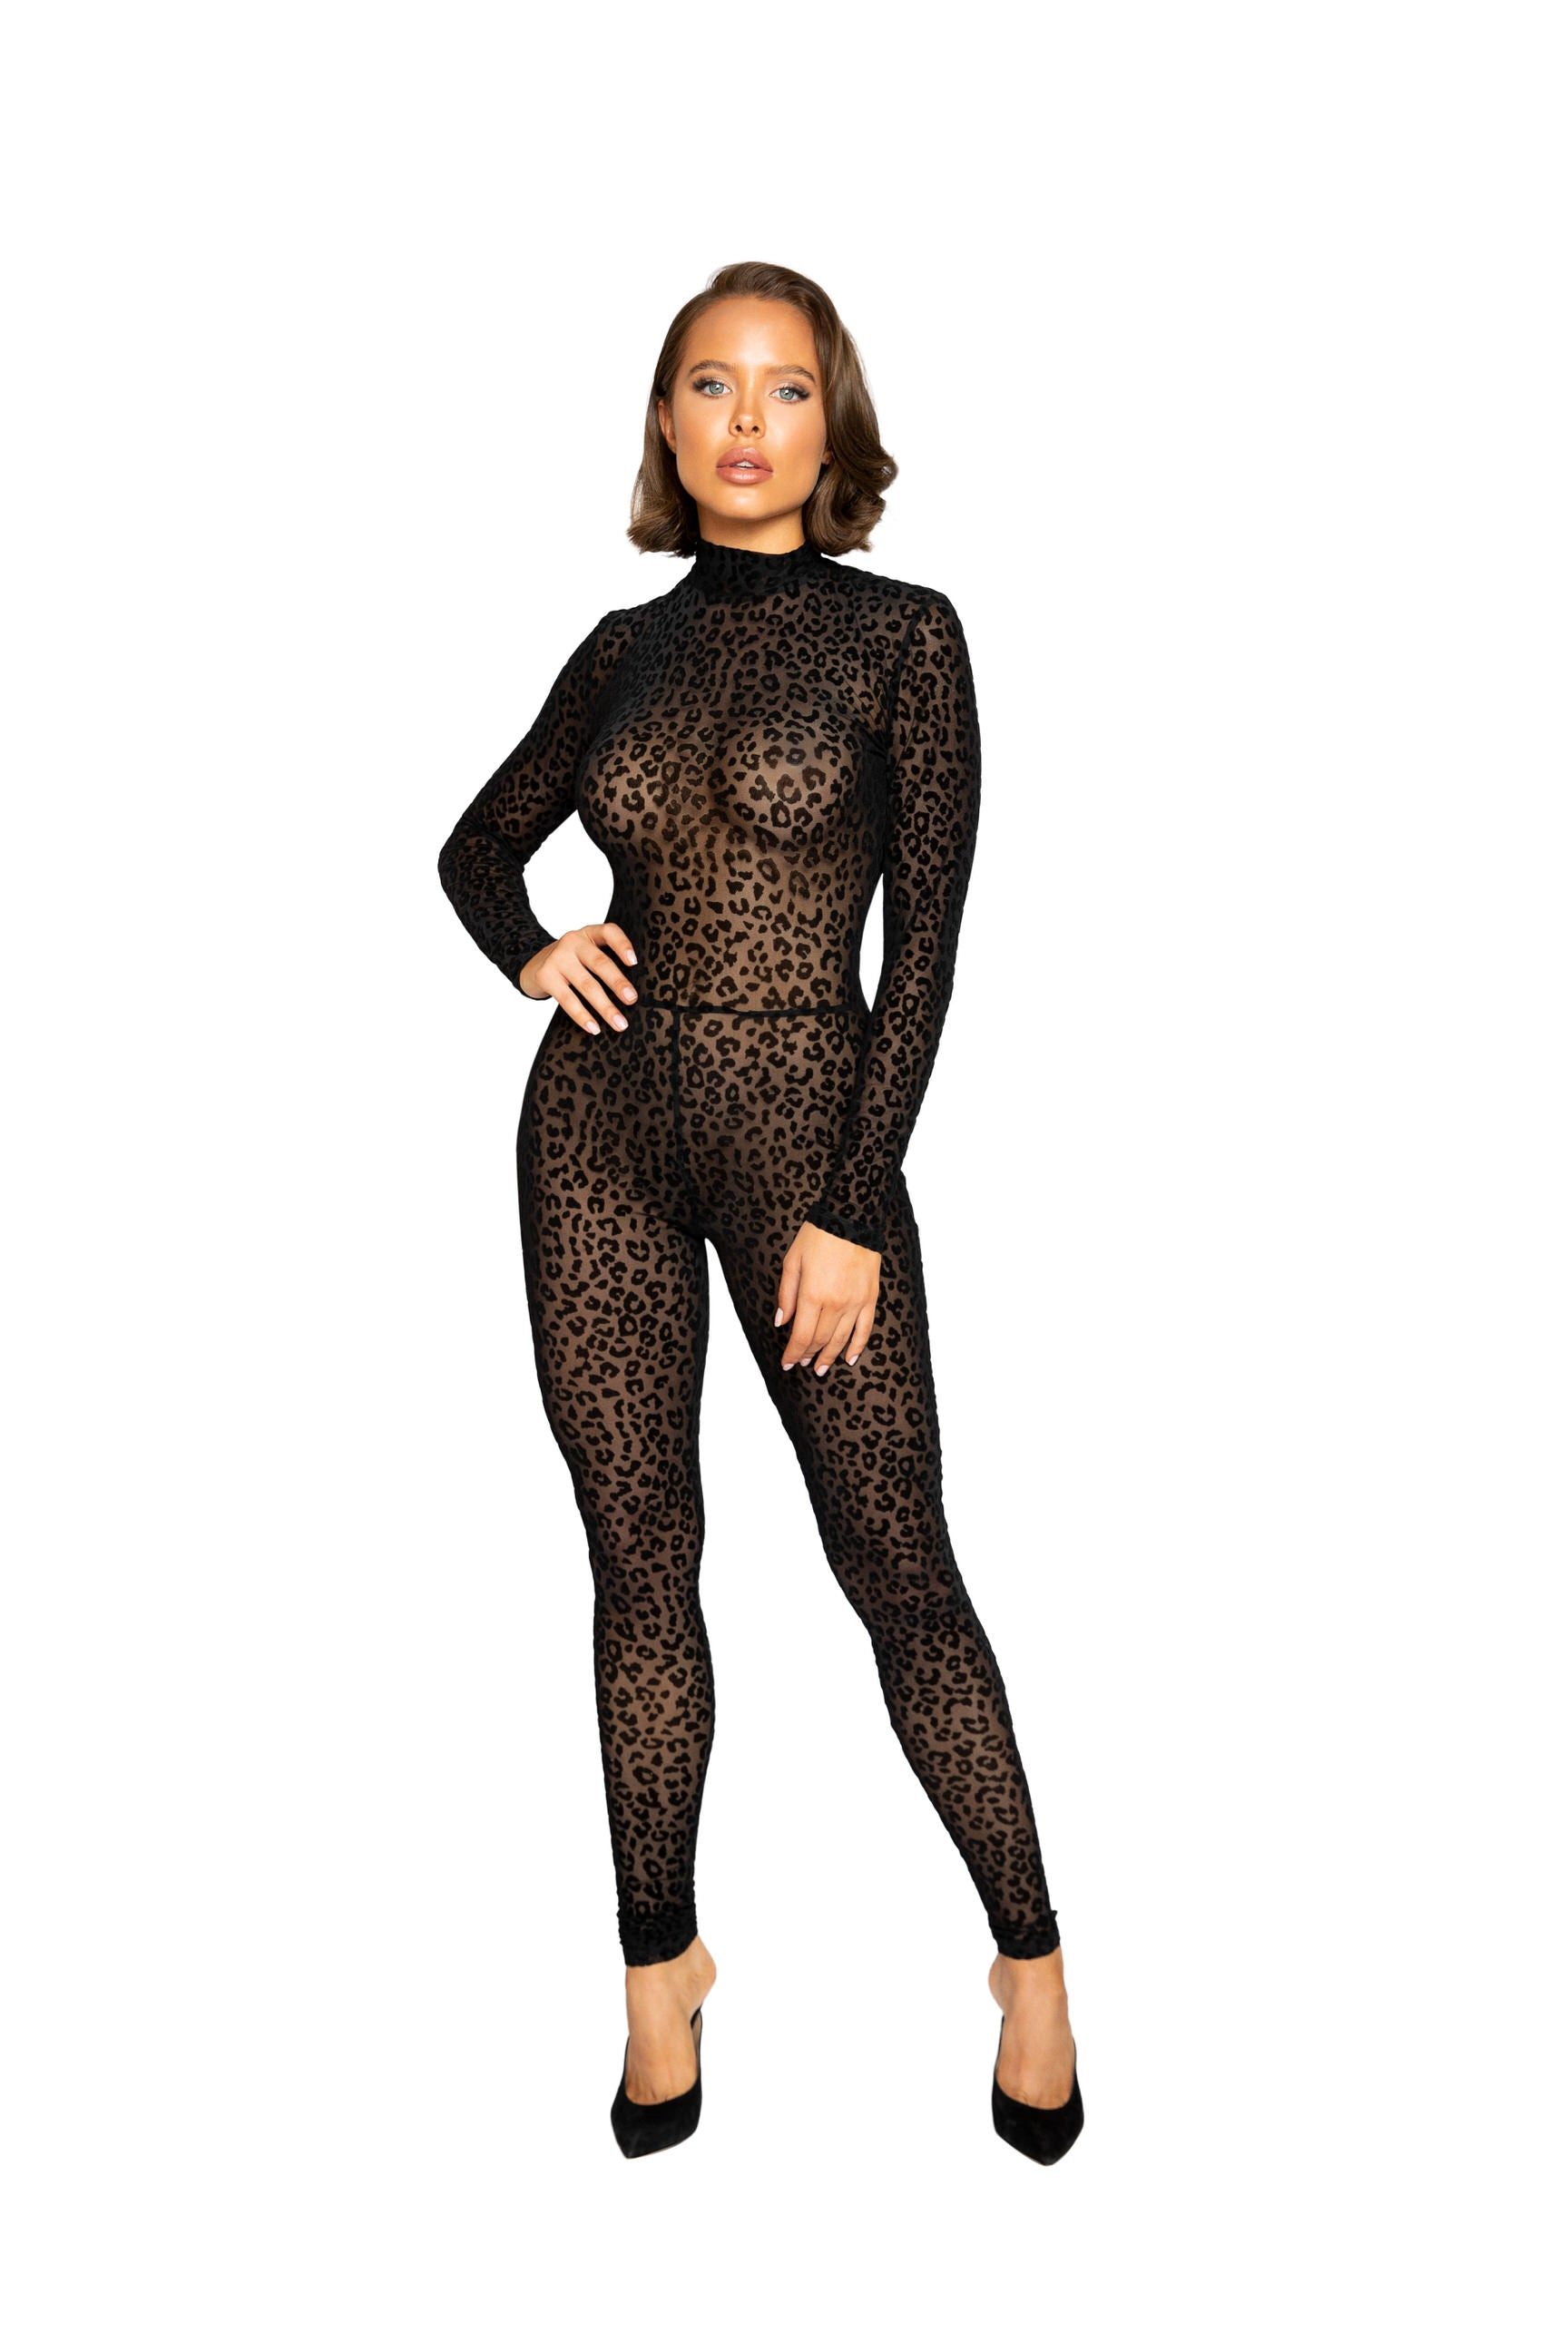 LI376 - Velvet Leopard Bodysuit ${description} | Roma Costume and Roma Confidential wholesale manufacturer of Women Apparel bulk world wide wholesale and world wide drop ship services for Adult Halloween Costumes, Sexy and Elegant Lingerie, Rave Clothing, Club wear, and Christmas Costumes. Lingerie, costumes, Roma Costume, Inc., Roma Costume, Roma Confidential, Wholesale clothing, drop ship, drop ship service, Wholesale Lingerie, Wholesale Adult Halloween Costumes, Rave Clothing, EDM Clothing, Festival Wear, Christmas Costumes, Clubwear, Club wear.